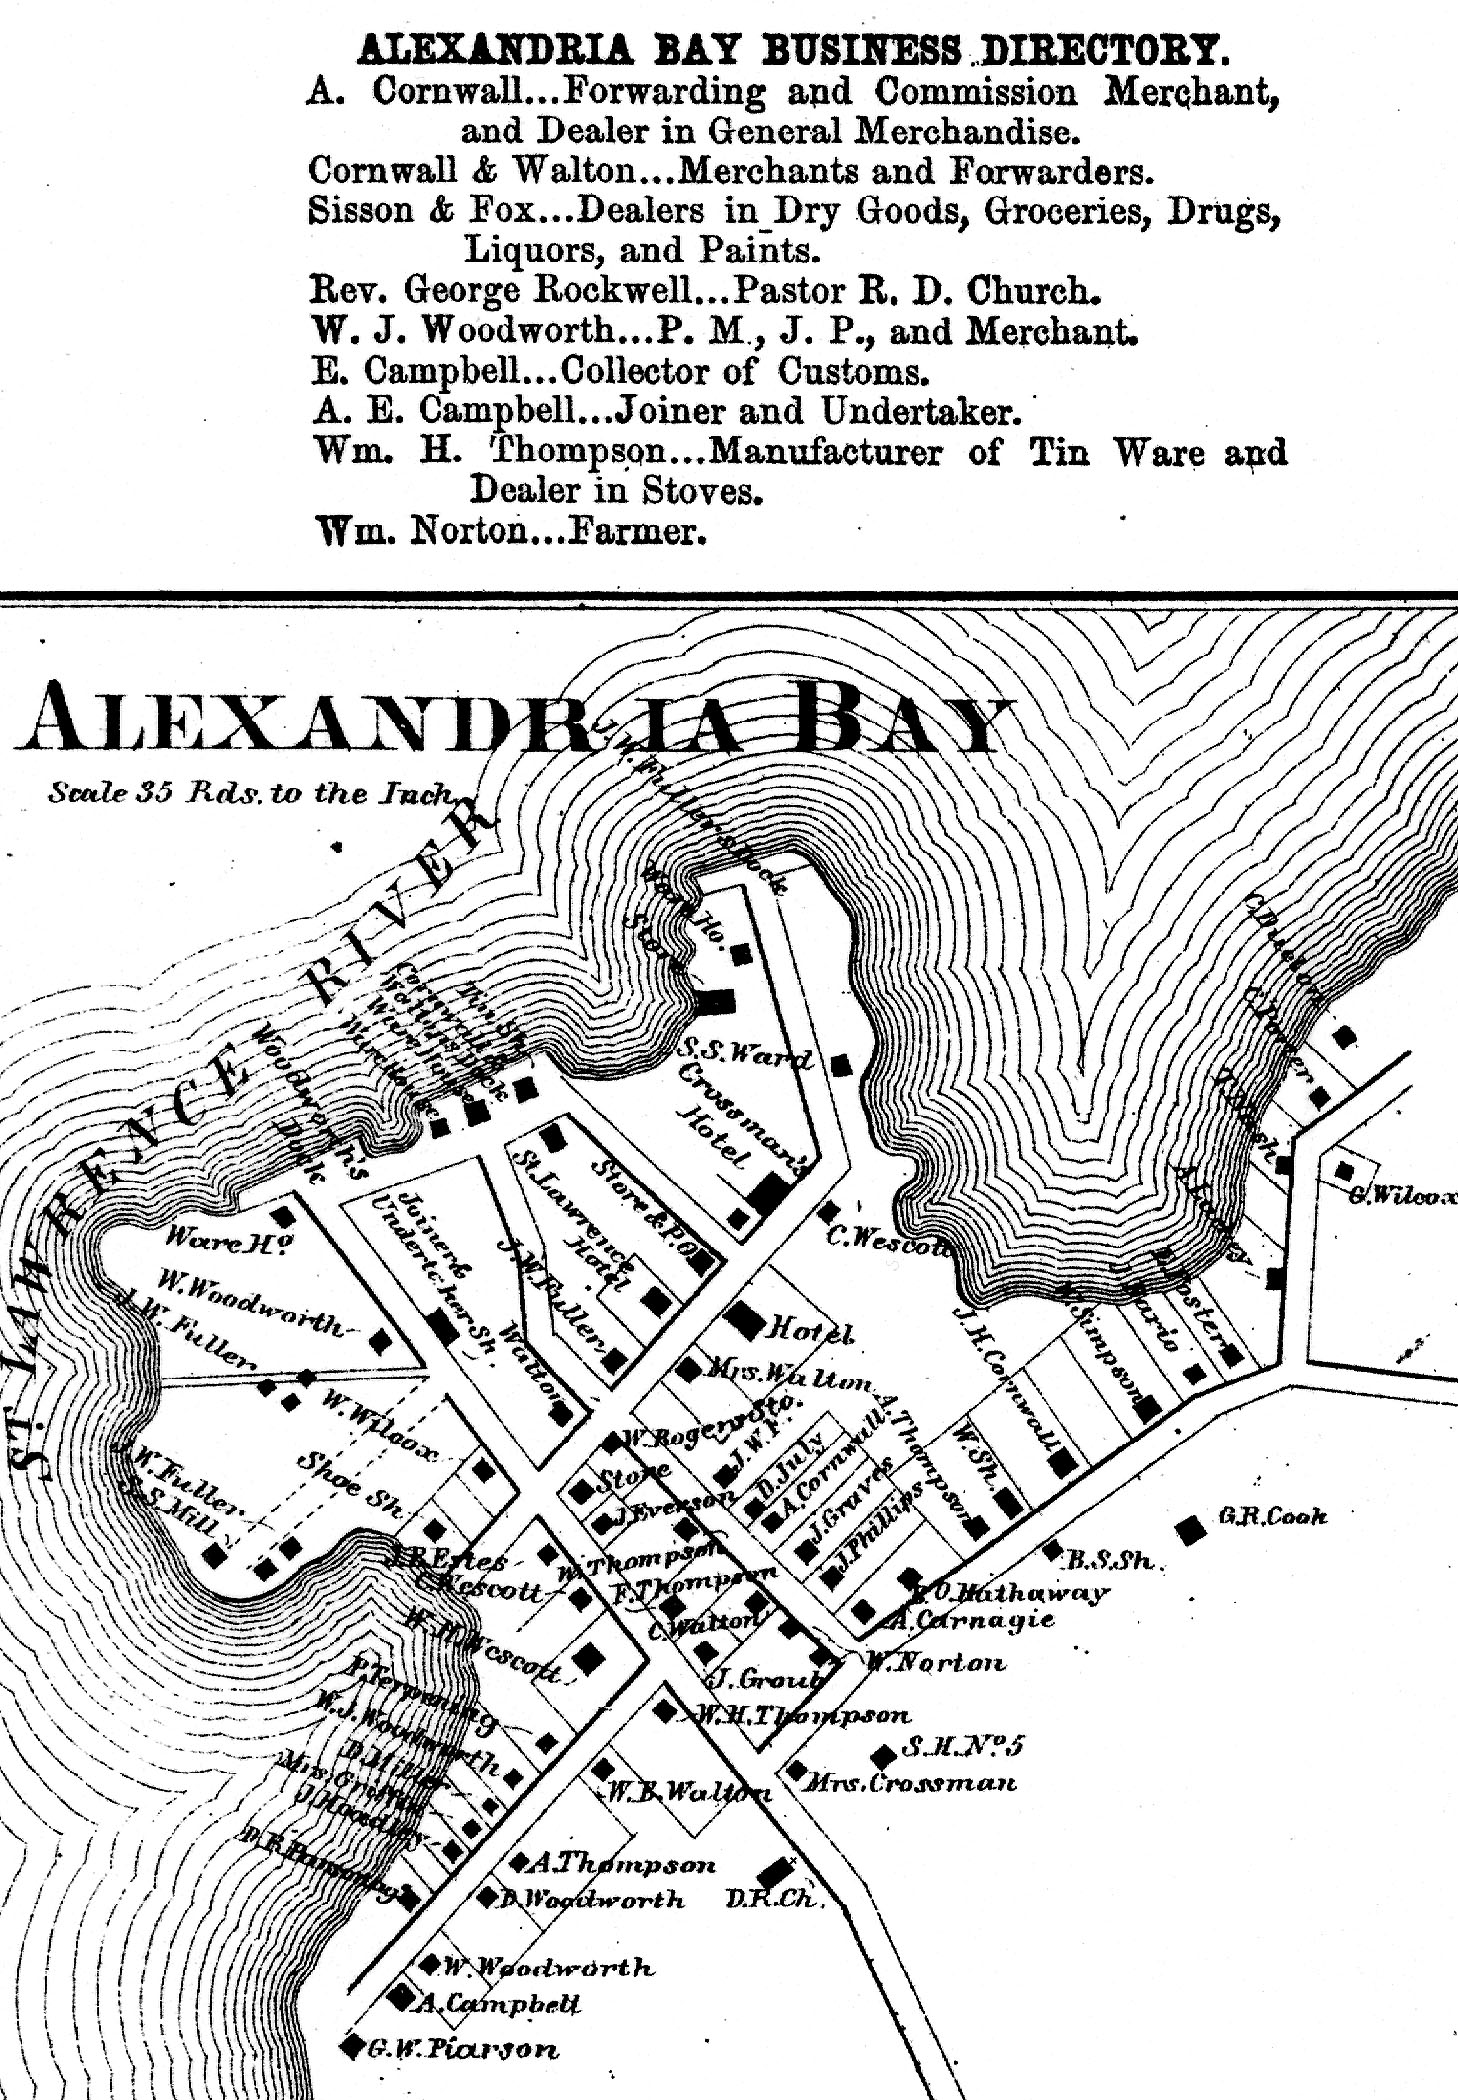 1864 Map of Alexandria Bay